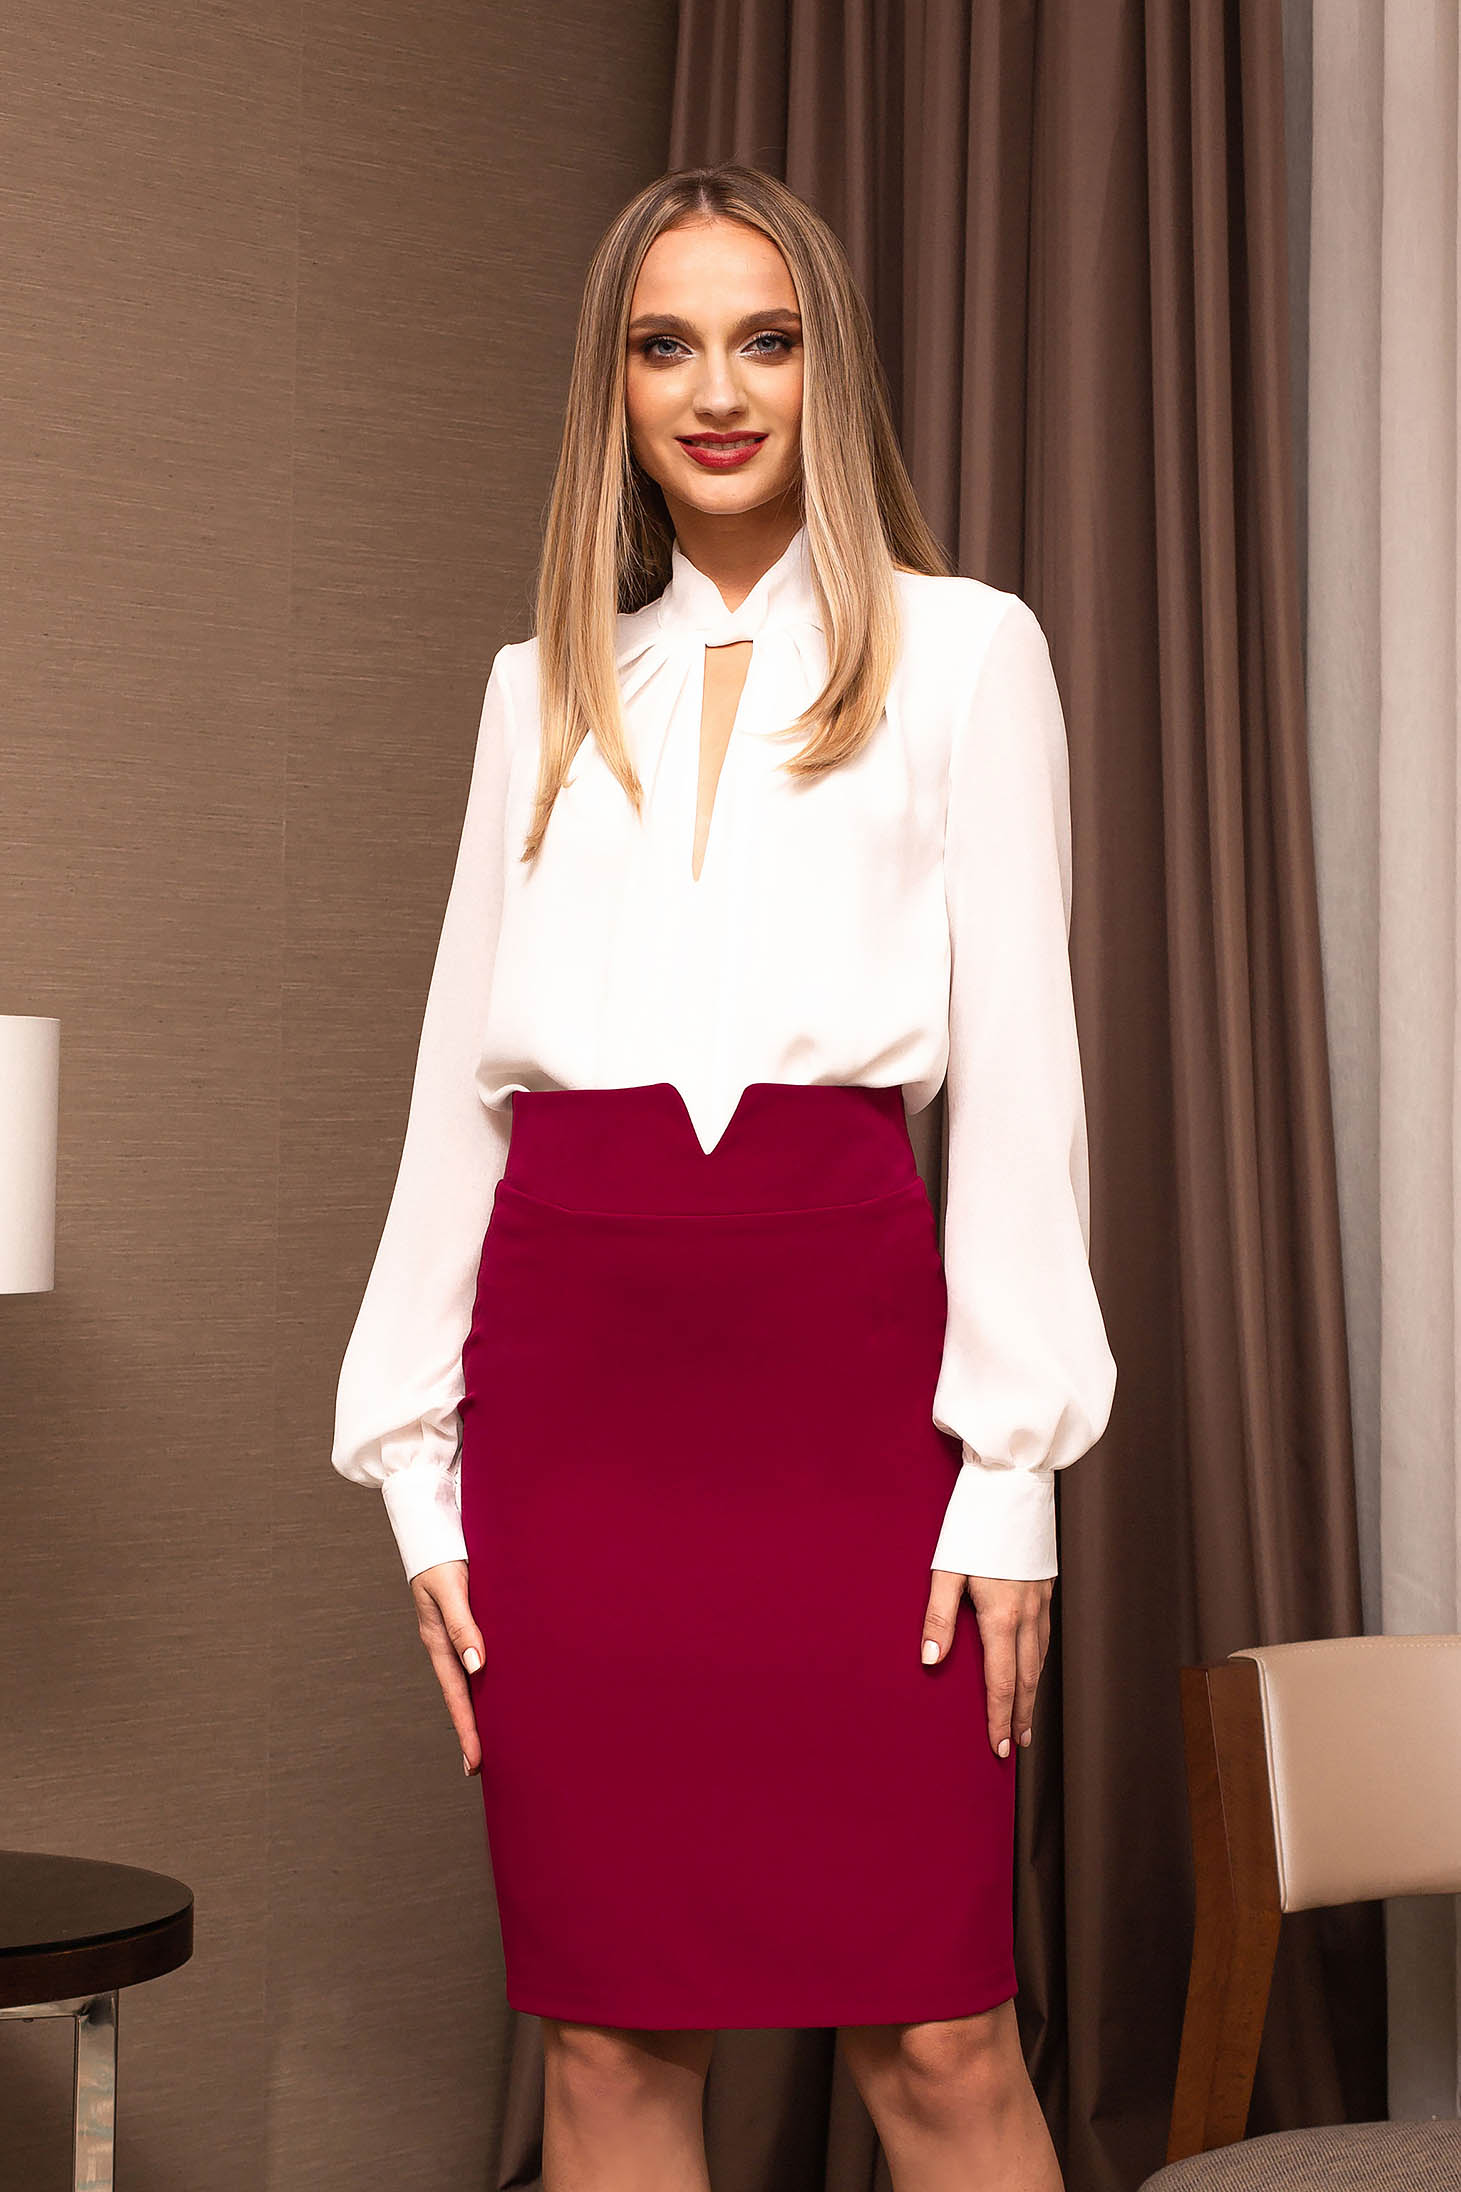 White women`s blouse office cut-out bust design short cut from veil fabric flared